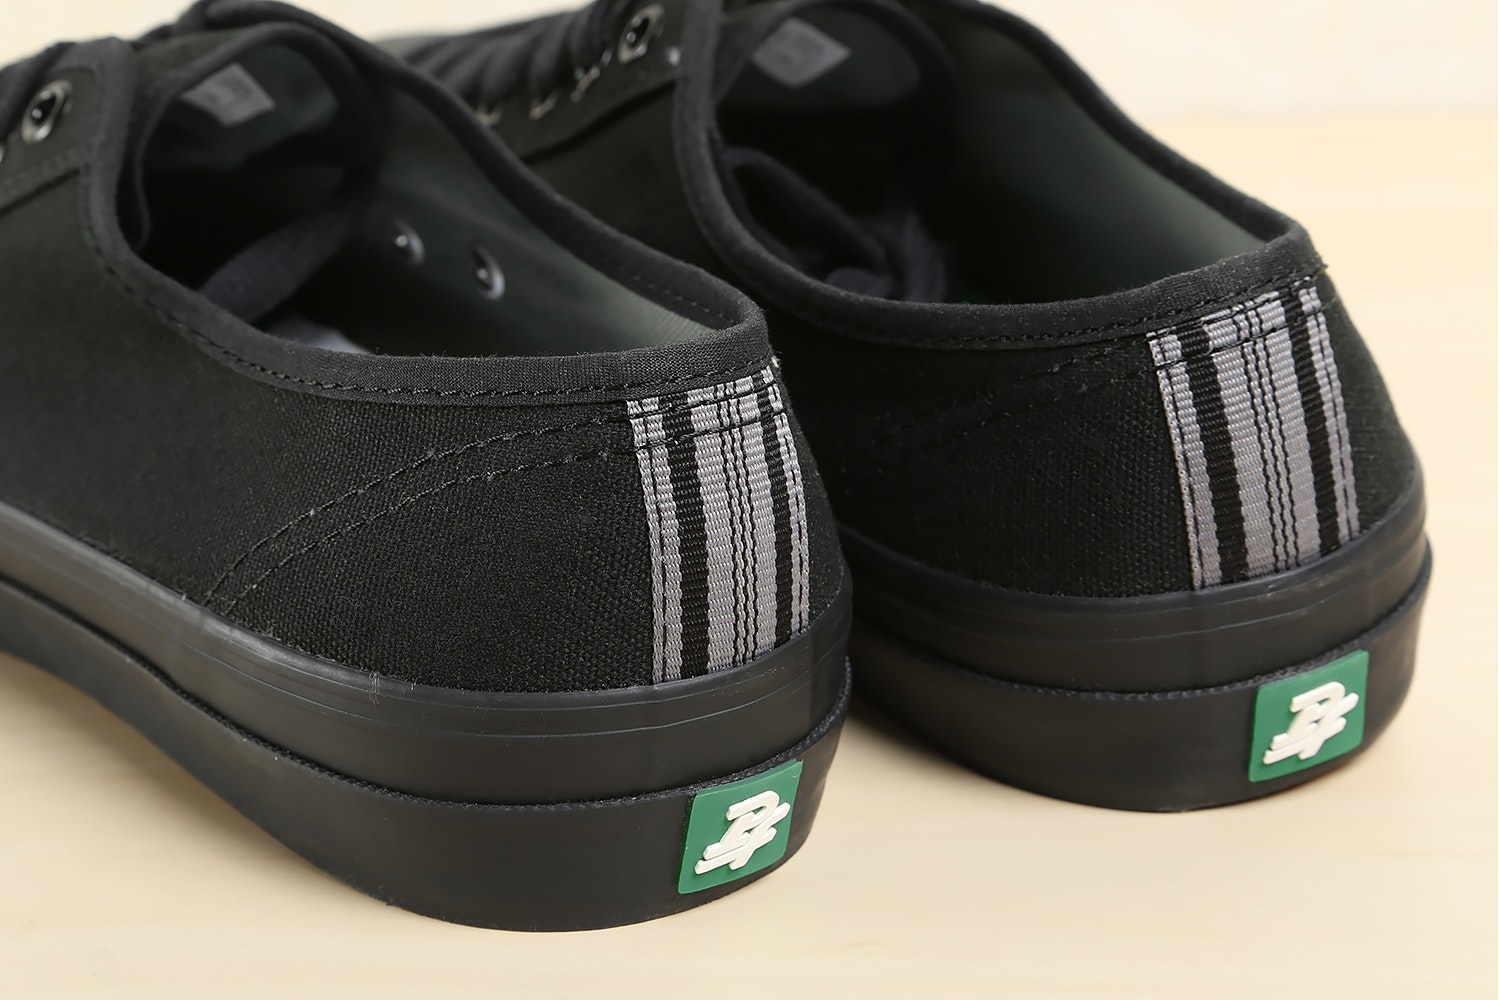 PF Flyers Center Lo Sneakers